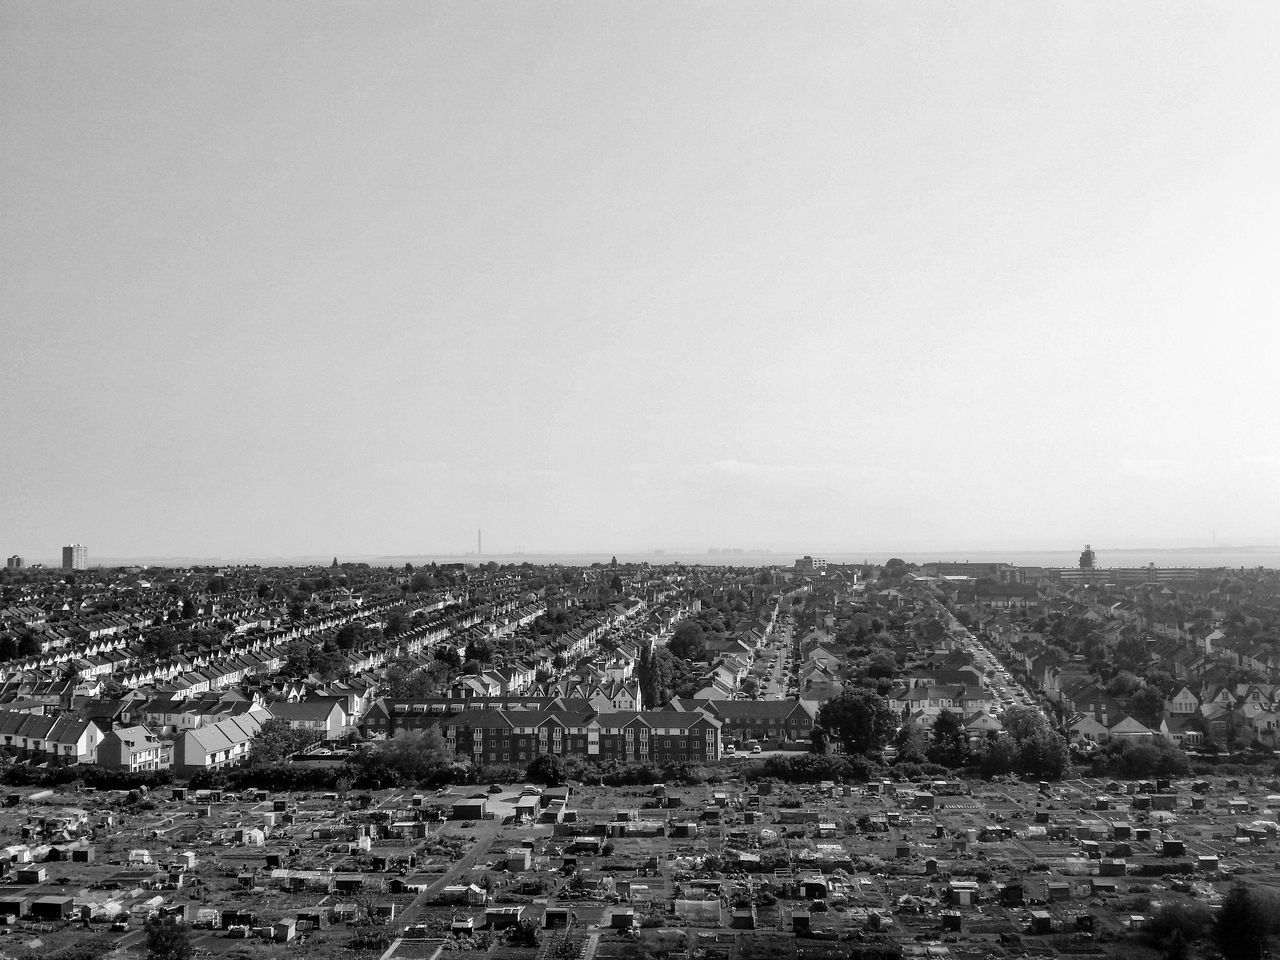 Aerial View Architecture Built Structure City City Life Cityscape Elevated View Horizon Over Land No People Outdoors Residential District Sky Westcliff Southend On Sea Allotments